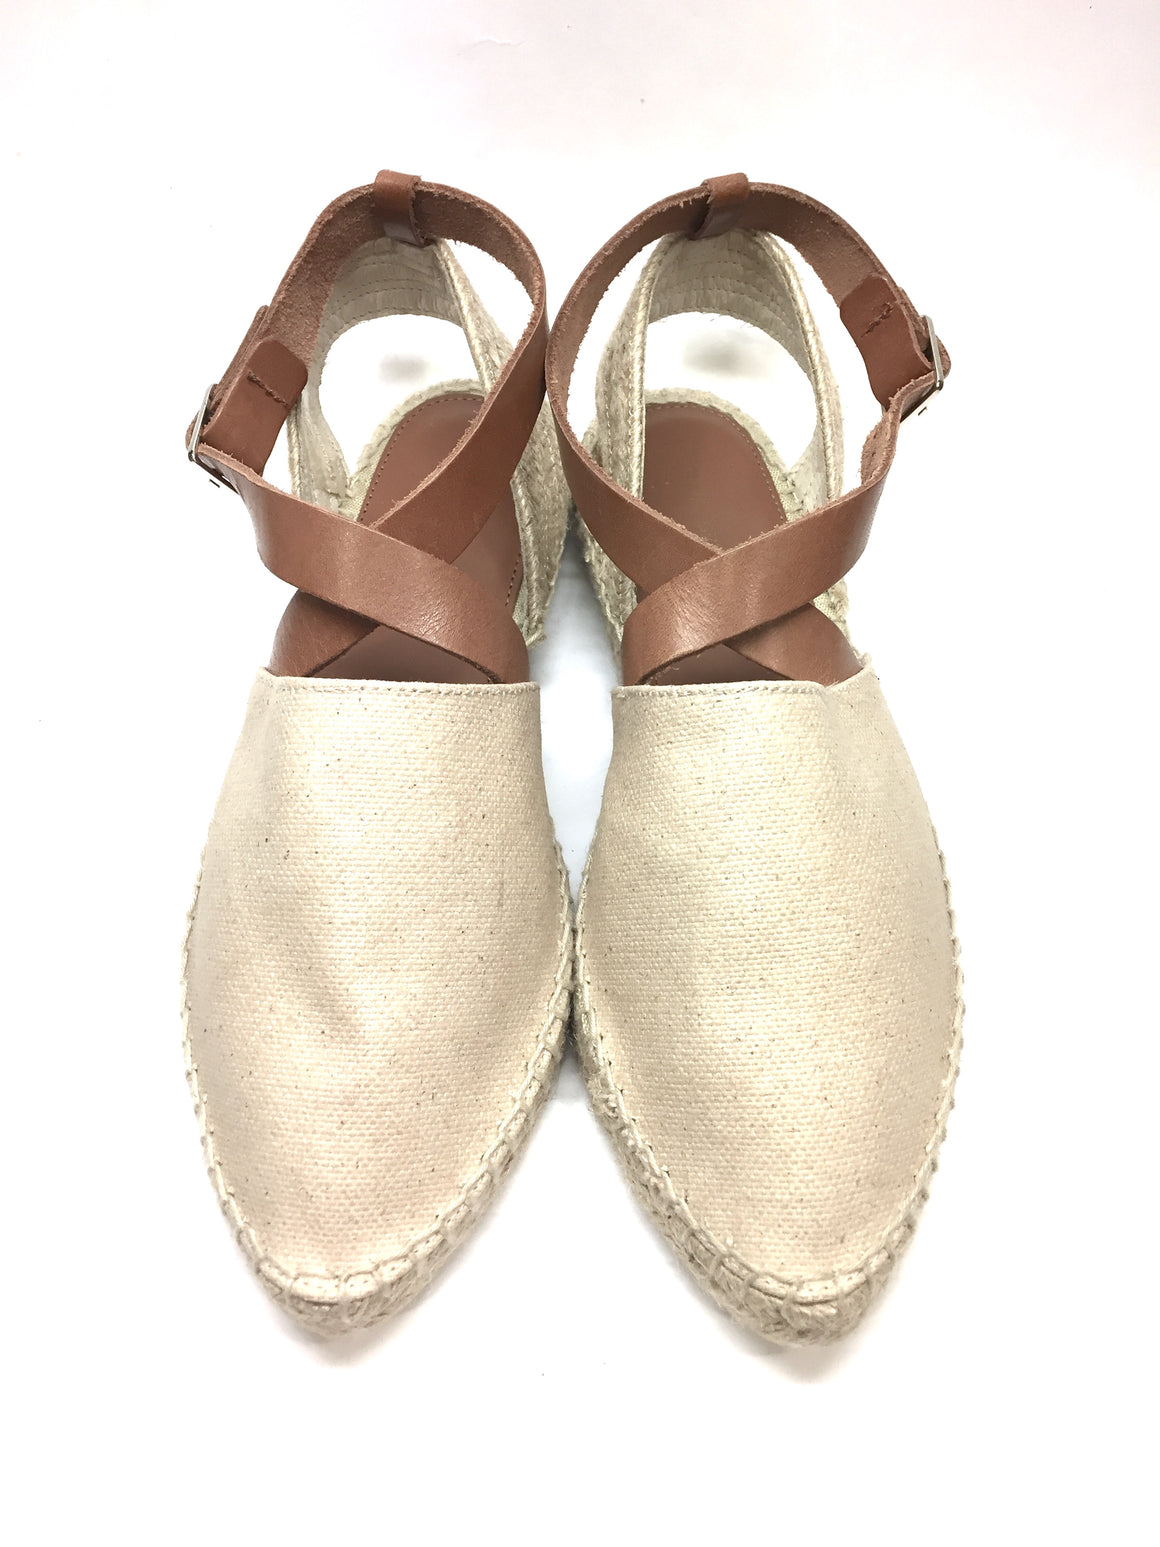 MATT BERNSON Beige Canvas Tan Leather Criss-Cross Strap Slingback Espadrilles SzEU37/US7